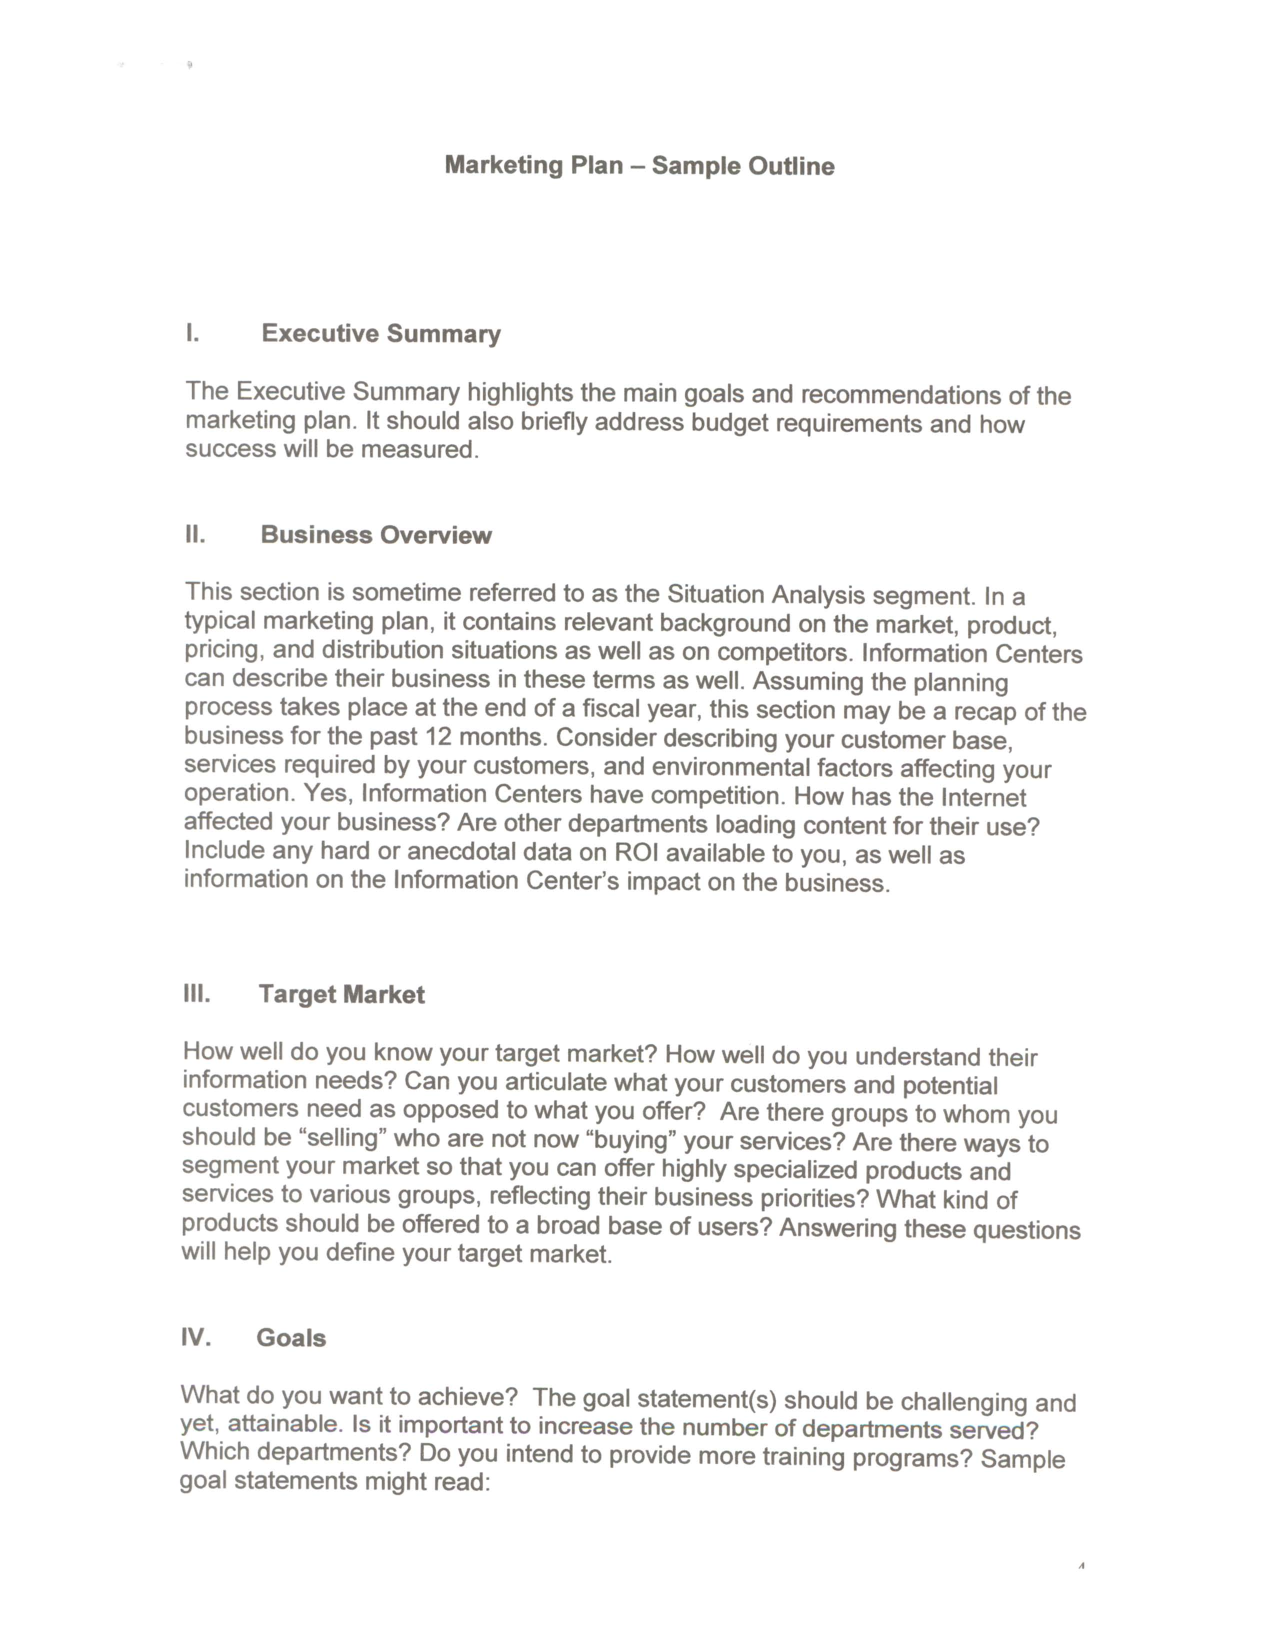 016 Research Paper Executive Summary Marketing Plan Example 384040 Amazing Apa Format Full